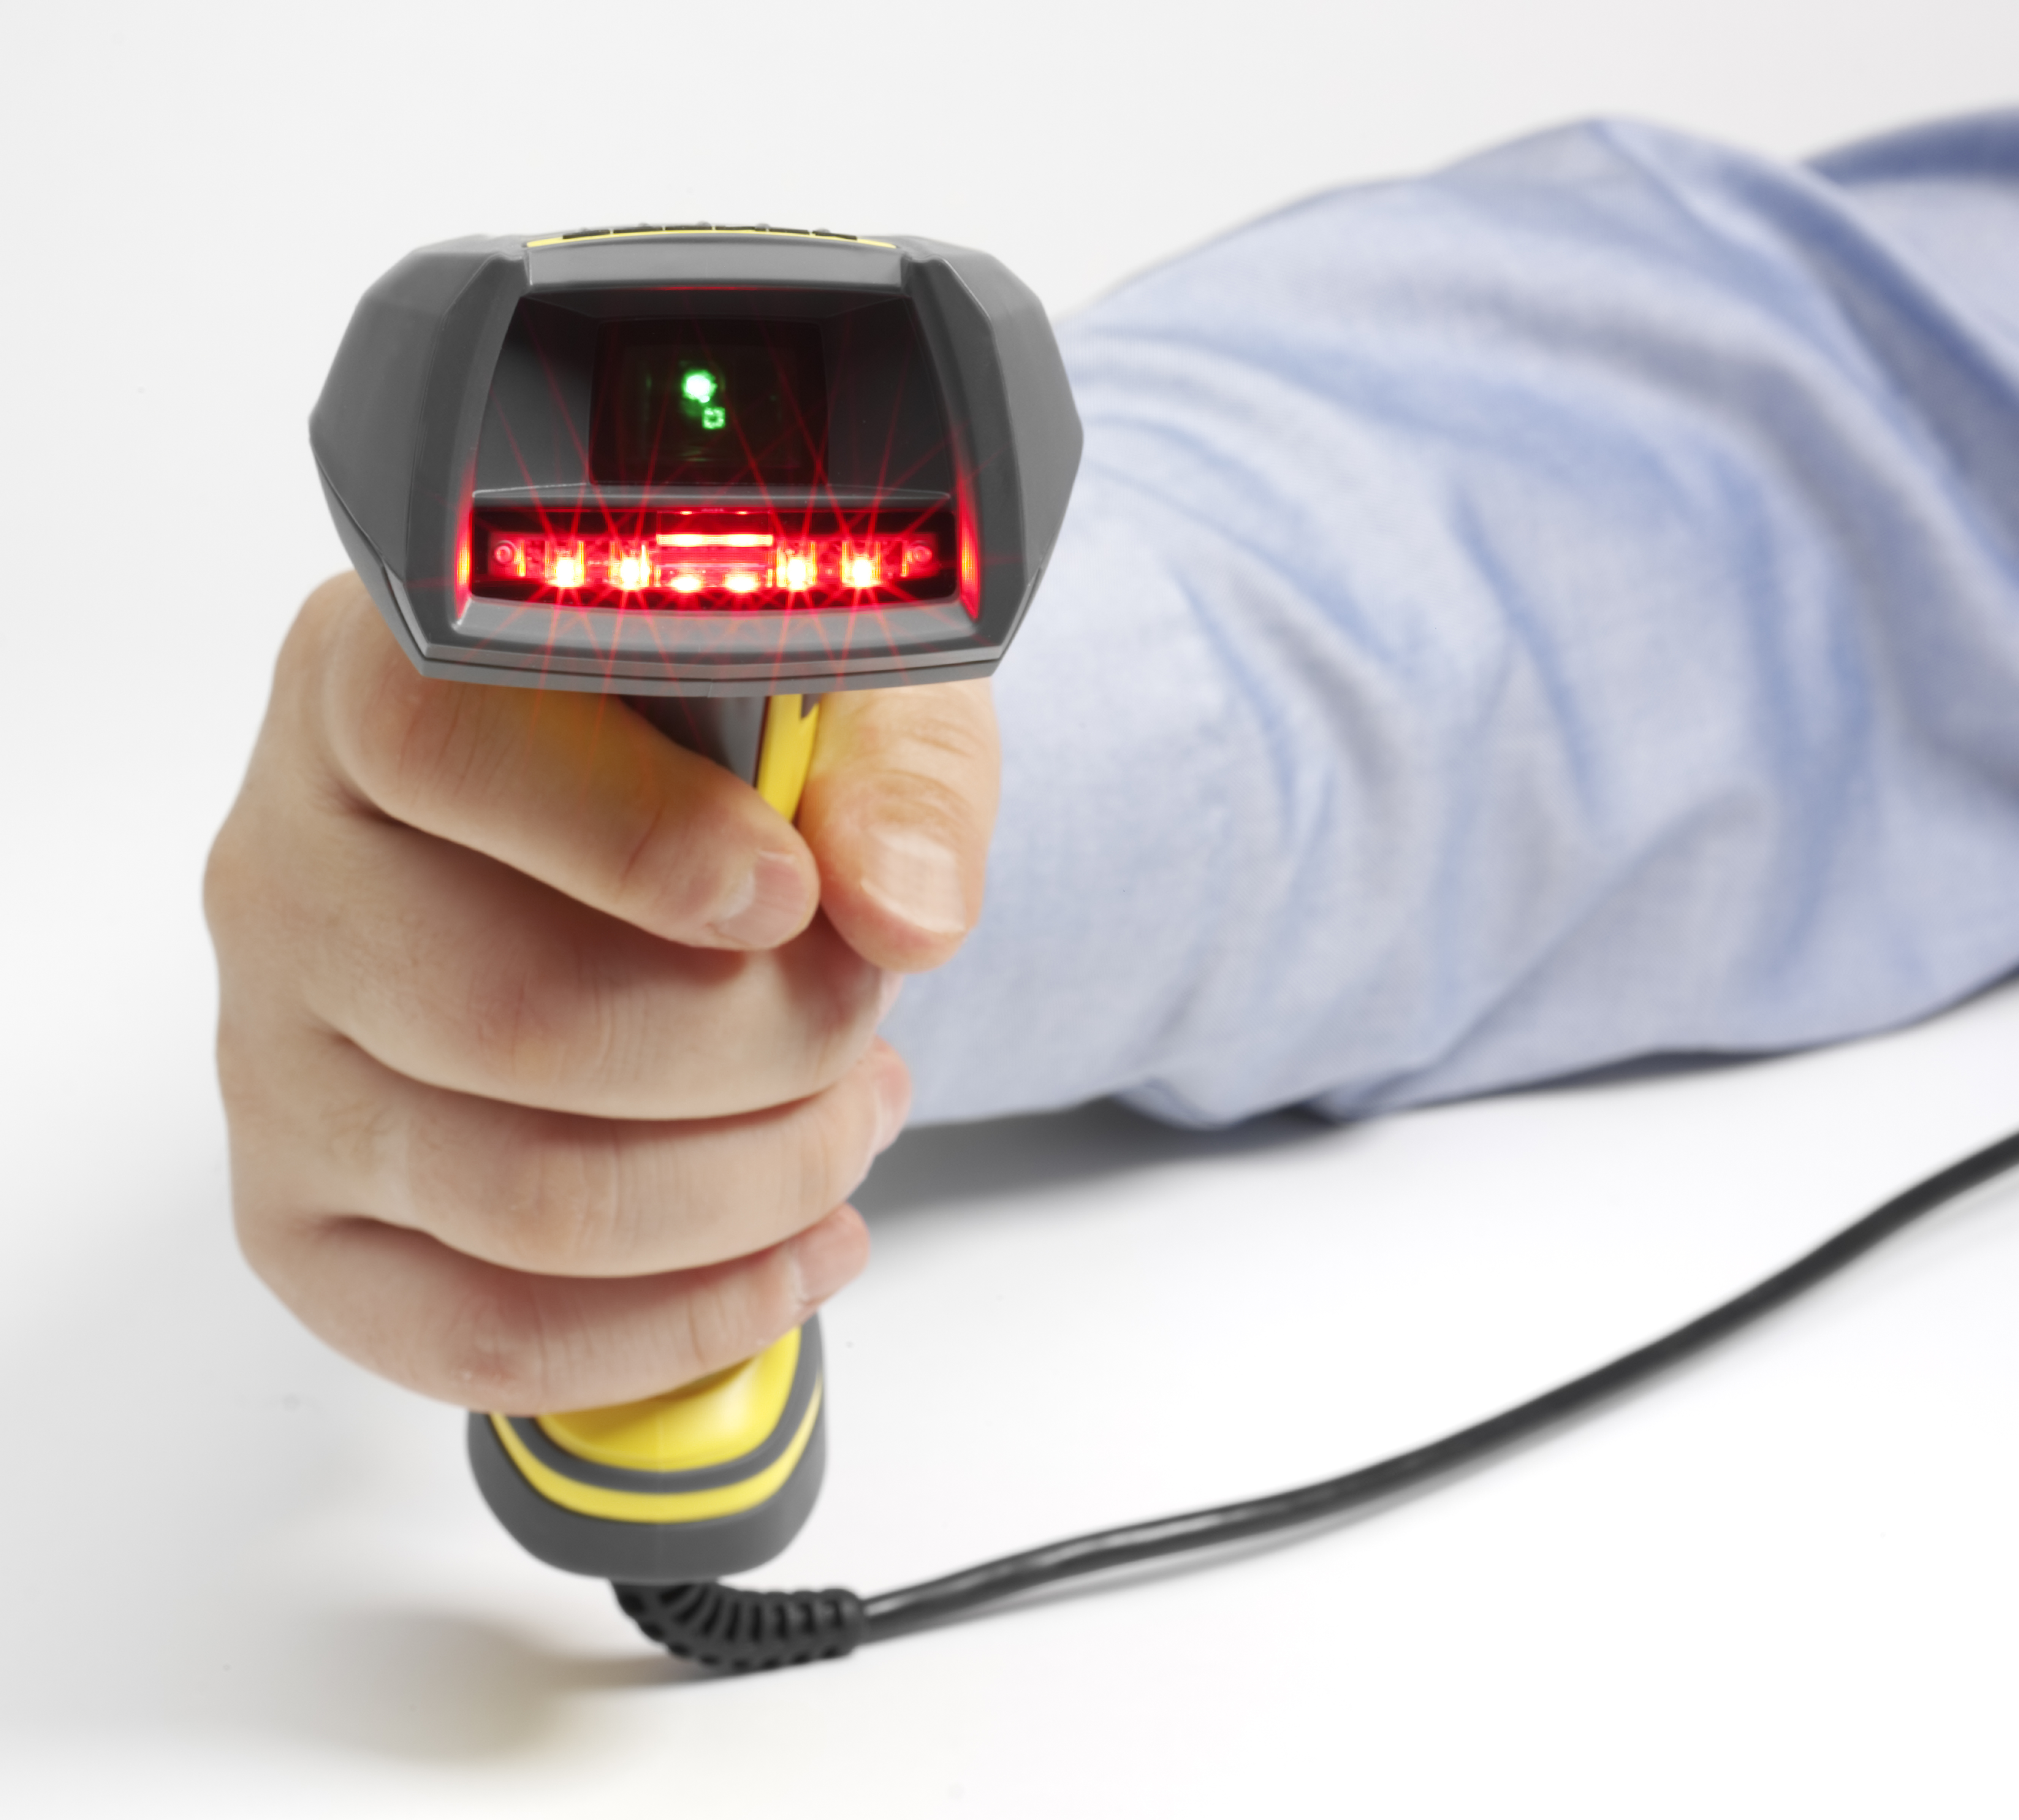 male operator scanning with Dataman 8050 handheld reader red light